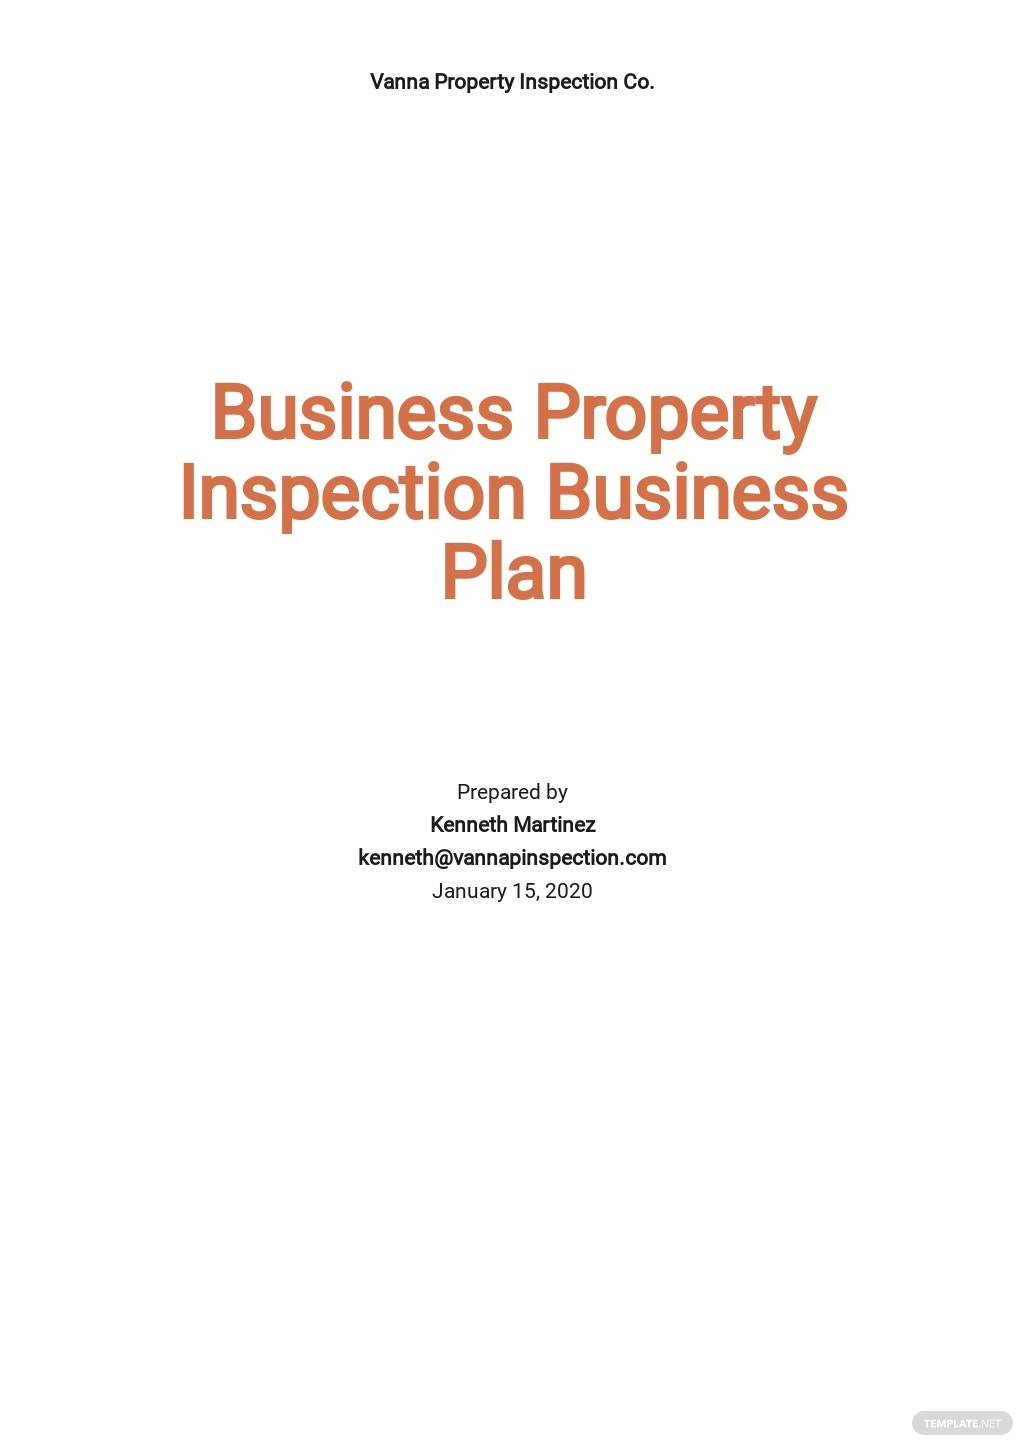 Business Property Inspection Business Plan Template.jpe